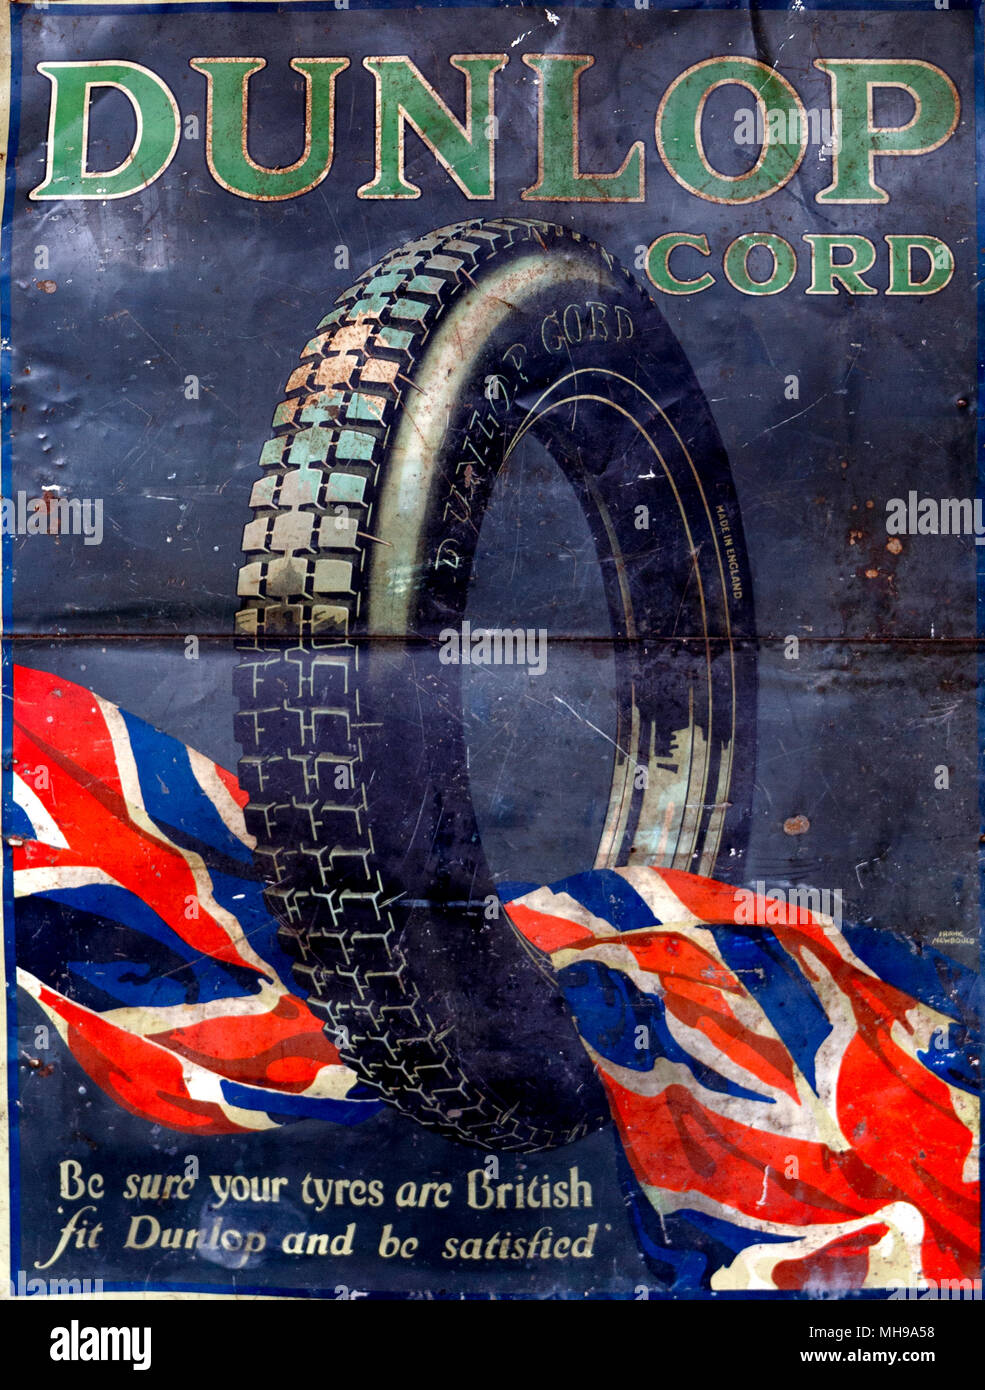 Pre war advertisement for Dunlop tyres - Stock Image